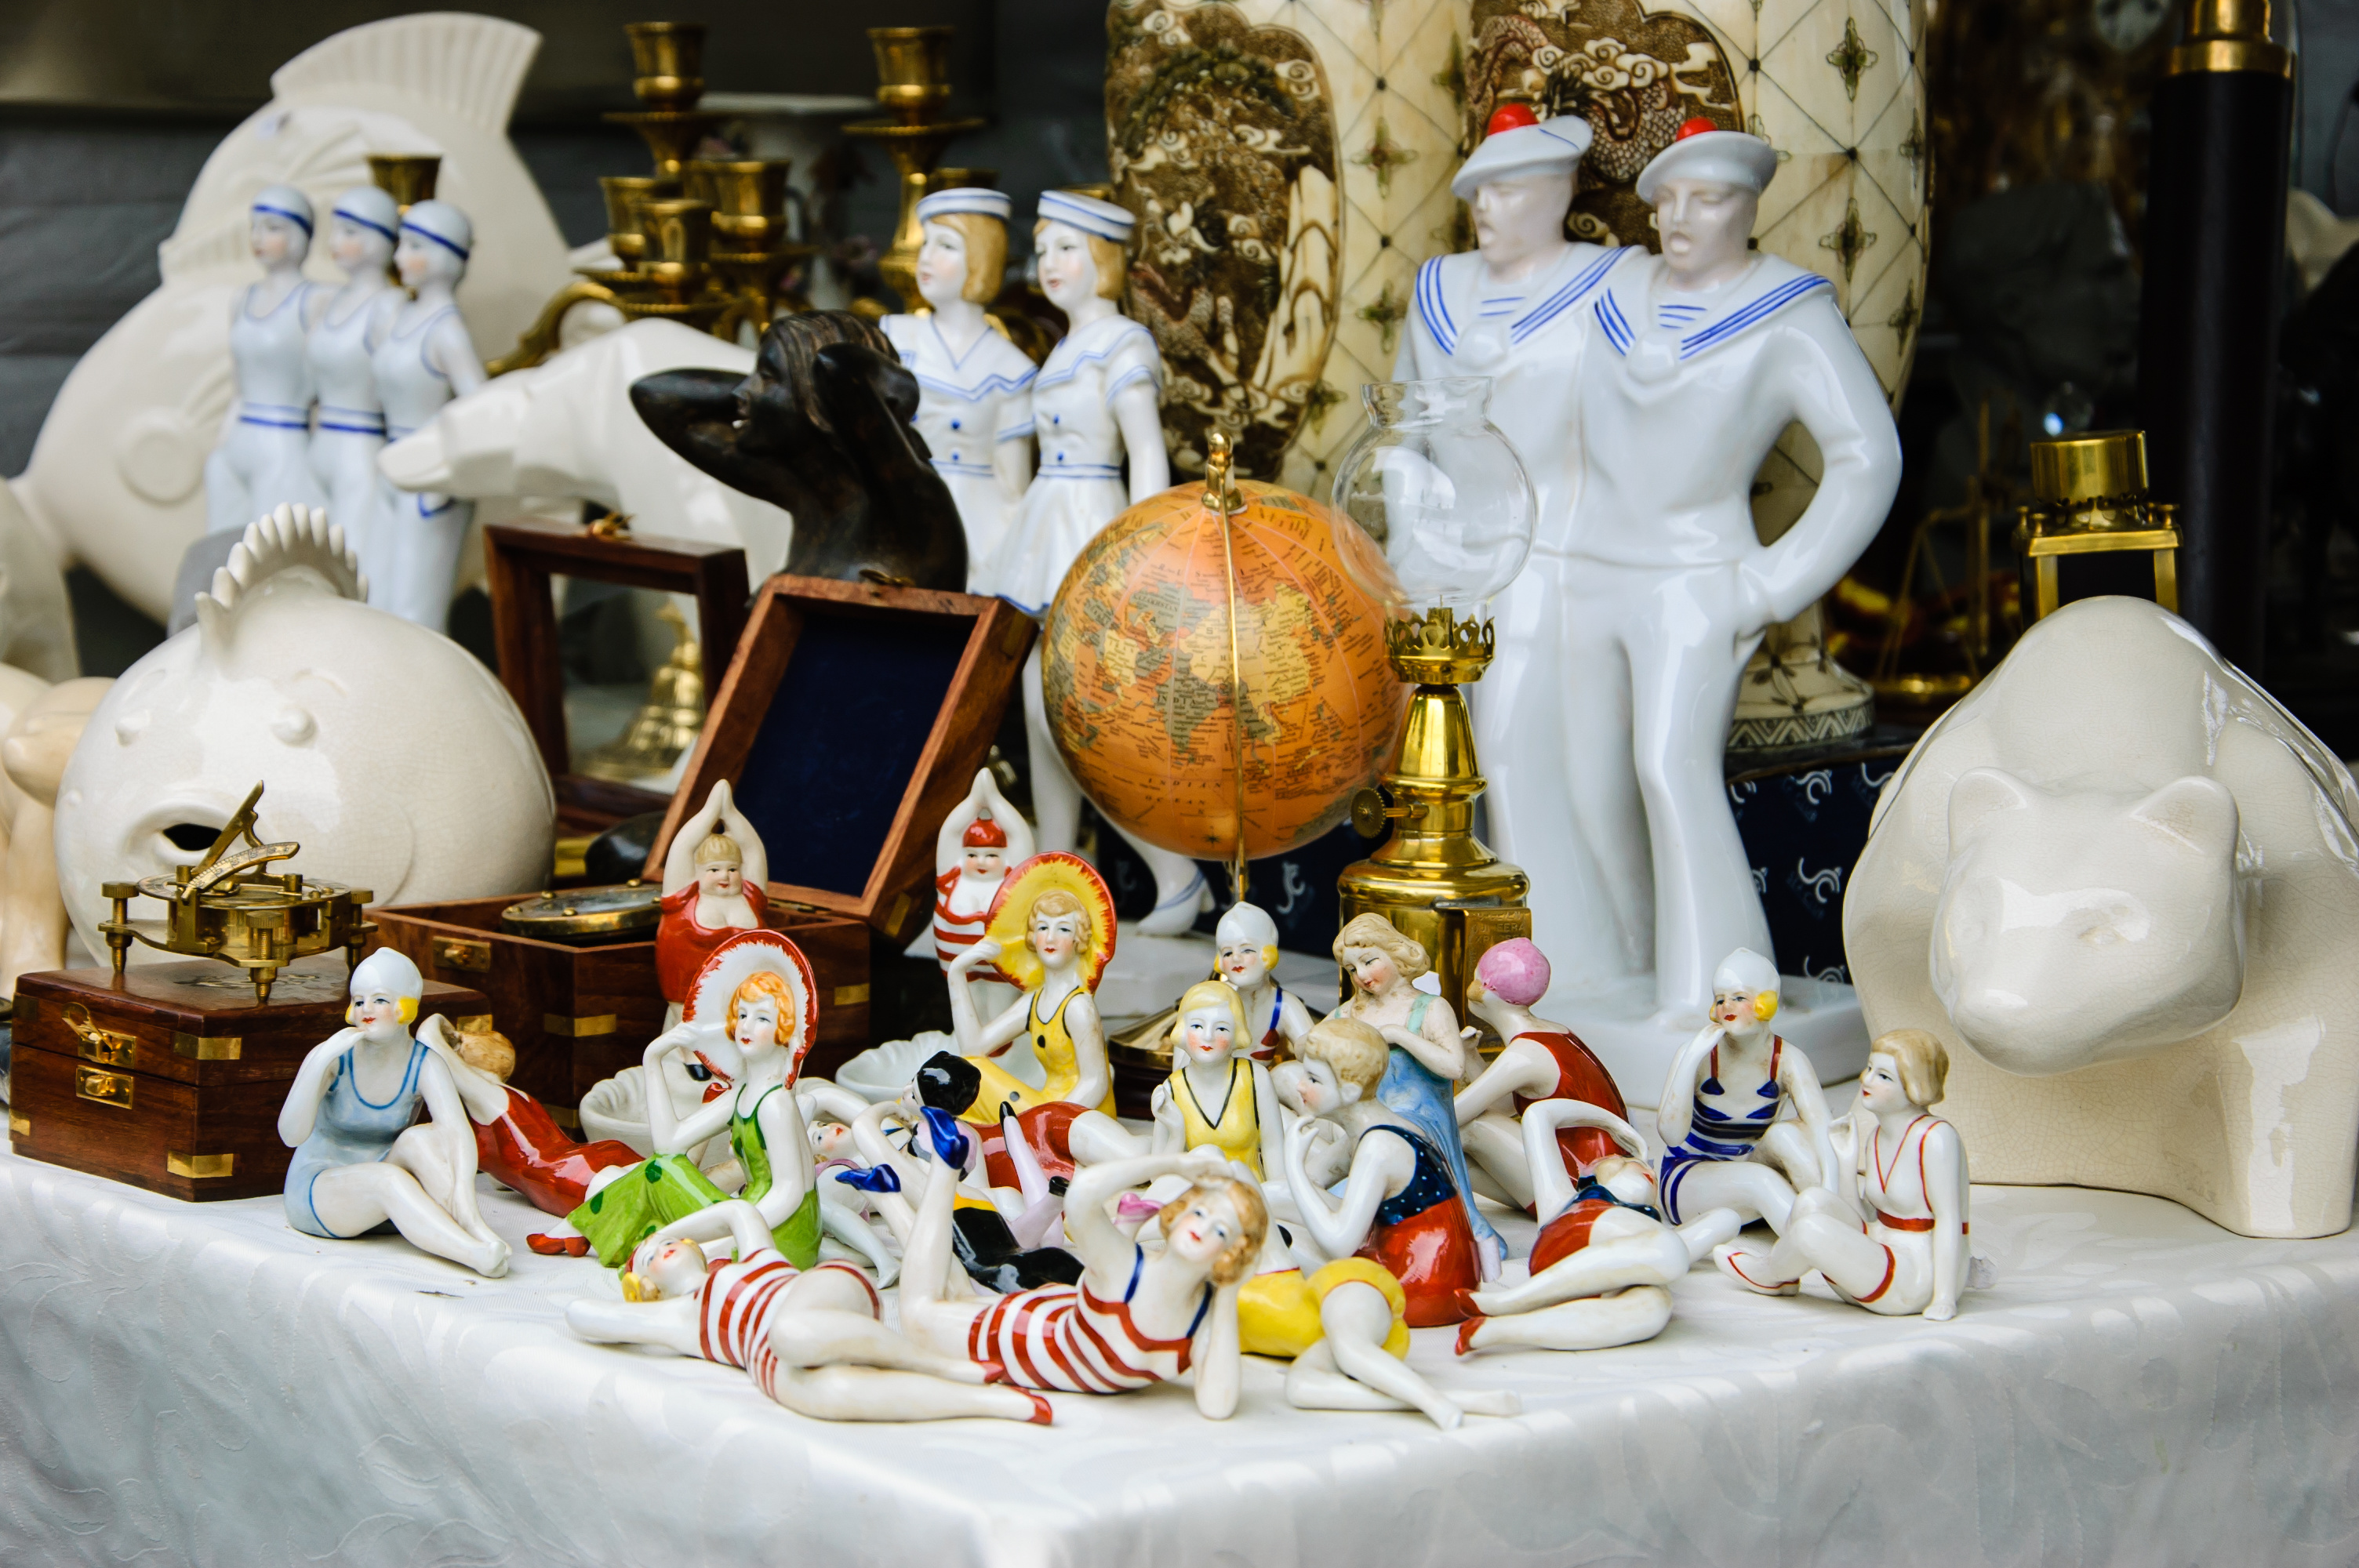 Restoring Antique Figurines – From Cleaning to Storing to Repairing